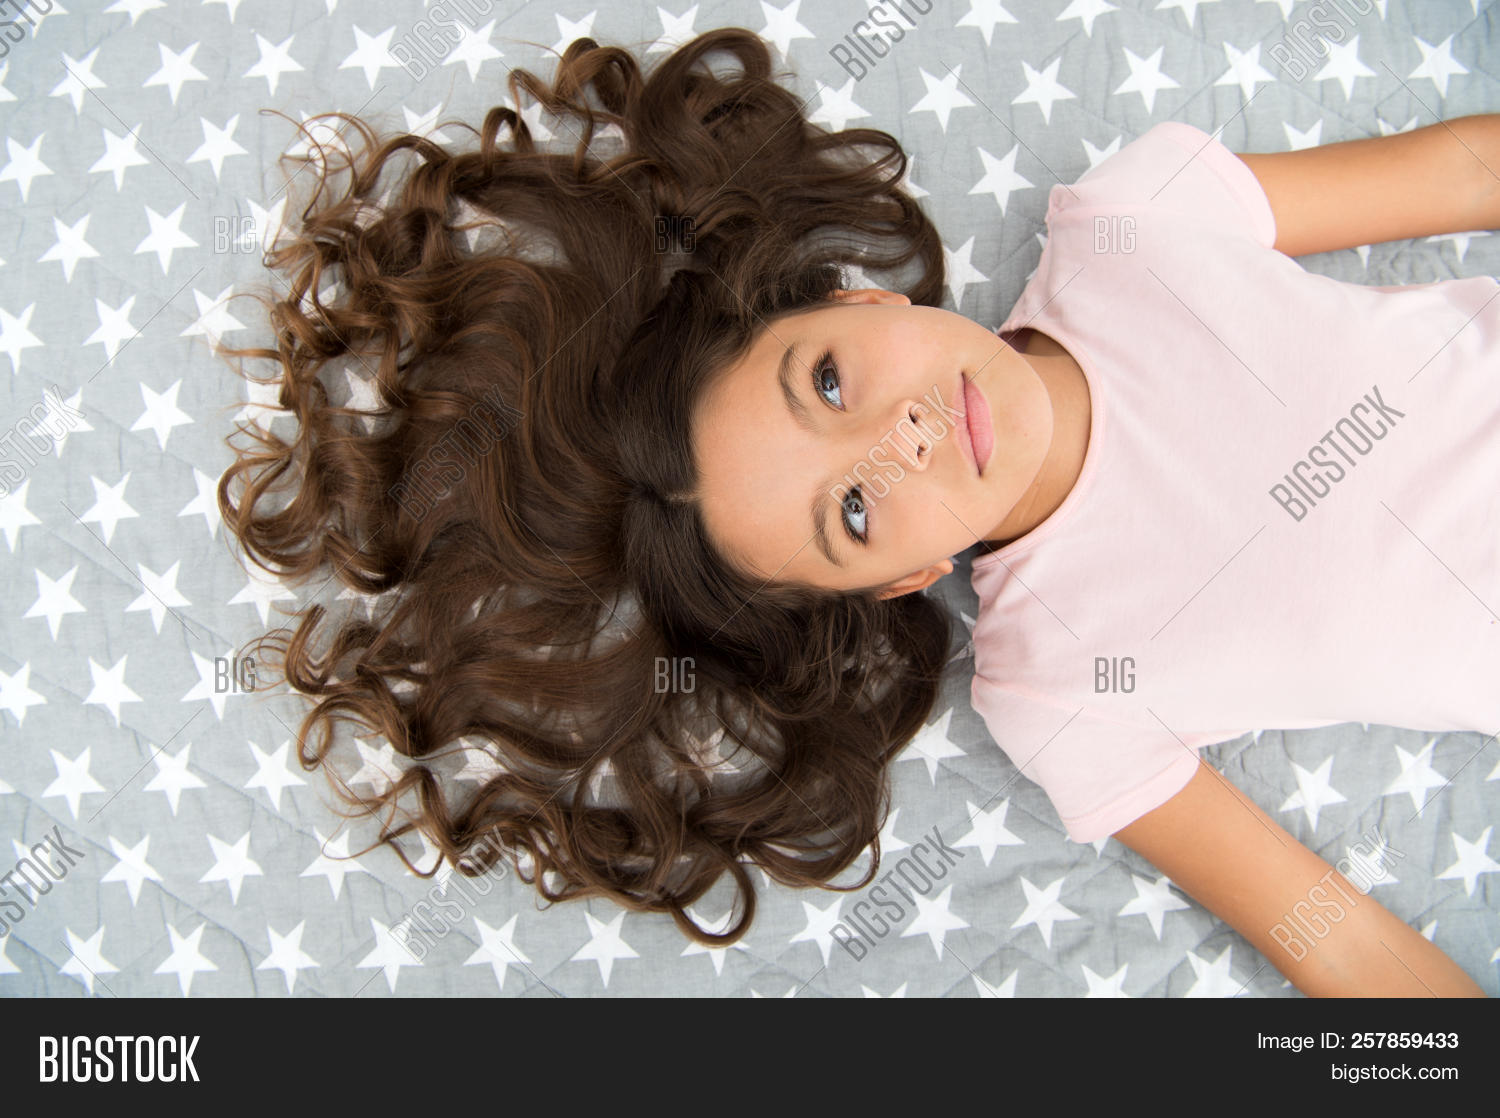 adorable,amazing,background,barber,beauty,bed,brunette,child,childhood,conditioner,curler,curls,curly,cute,dreamy,fixation,girl,hair,hairstyle,health,healthy,keep,keratin,kid,lay,little,long,look,make,mask,moisturizing,natural,nutrition,oil,organic,perfect,resistance,salon,shampoo,shiny,small,soft,strength,styling,tender,tips,top,view,vitamin